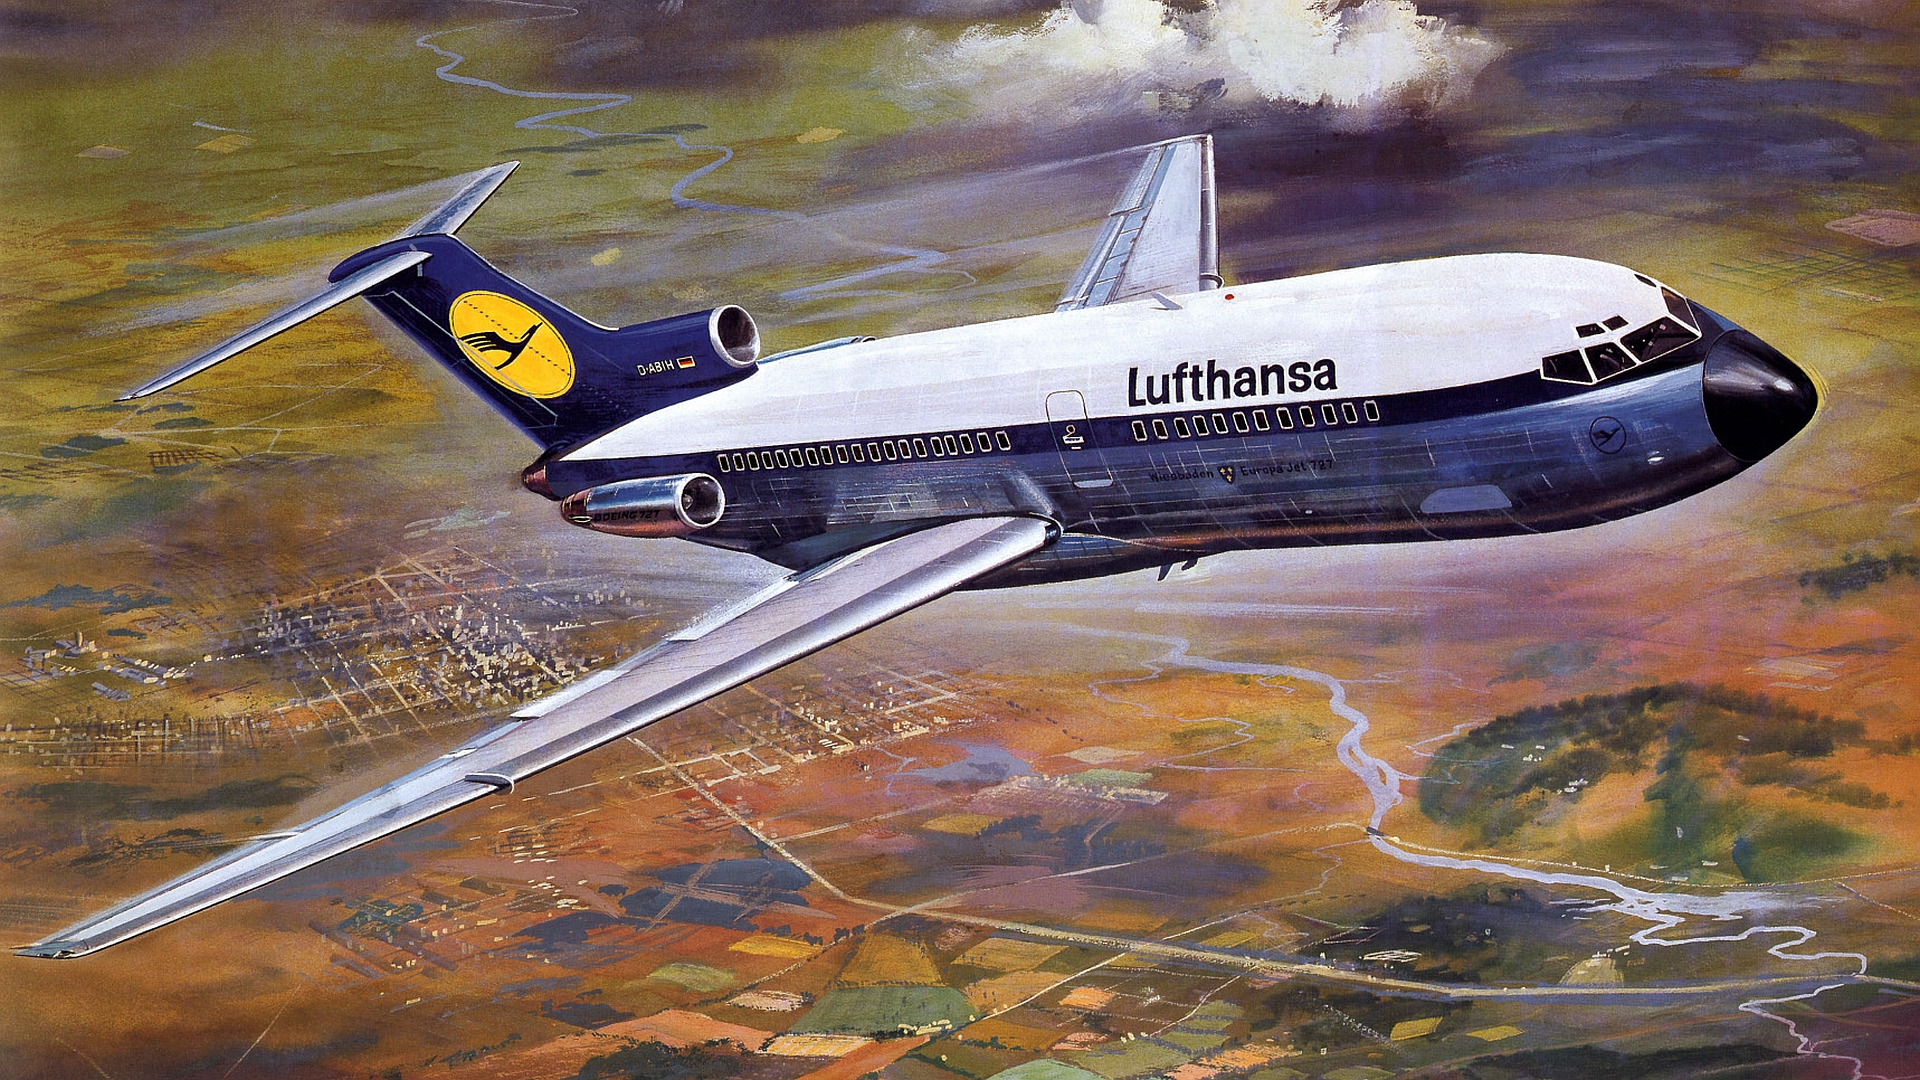 Airbus Iphone Wallpaper Boeing 727 100 Lufthansa D Abih Full Hd Wallpaper And